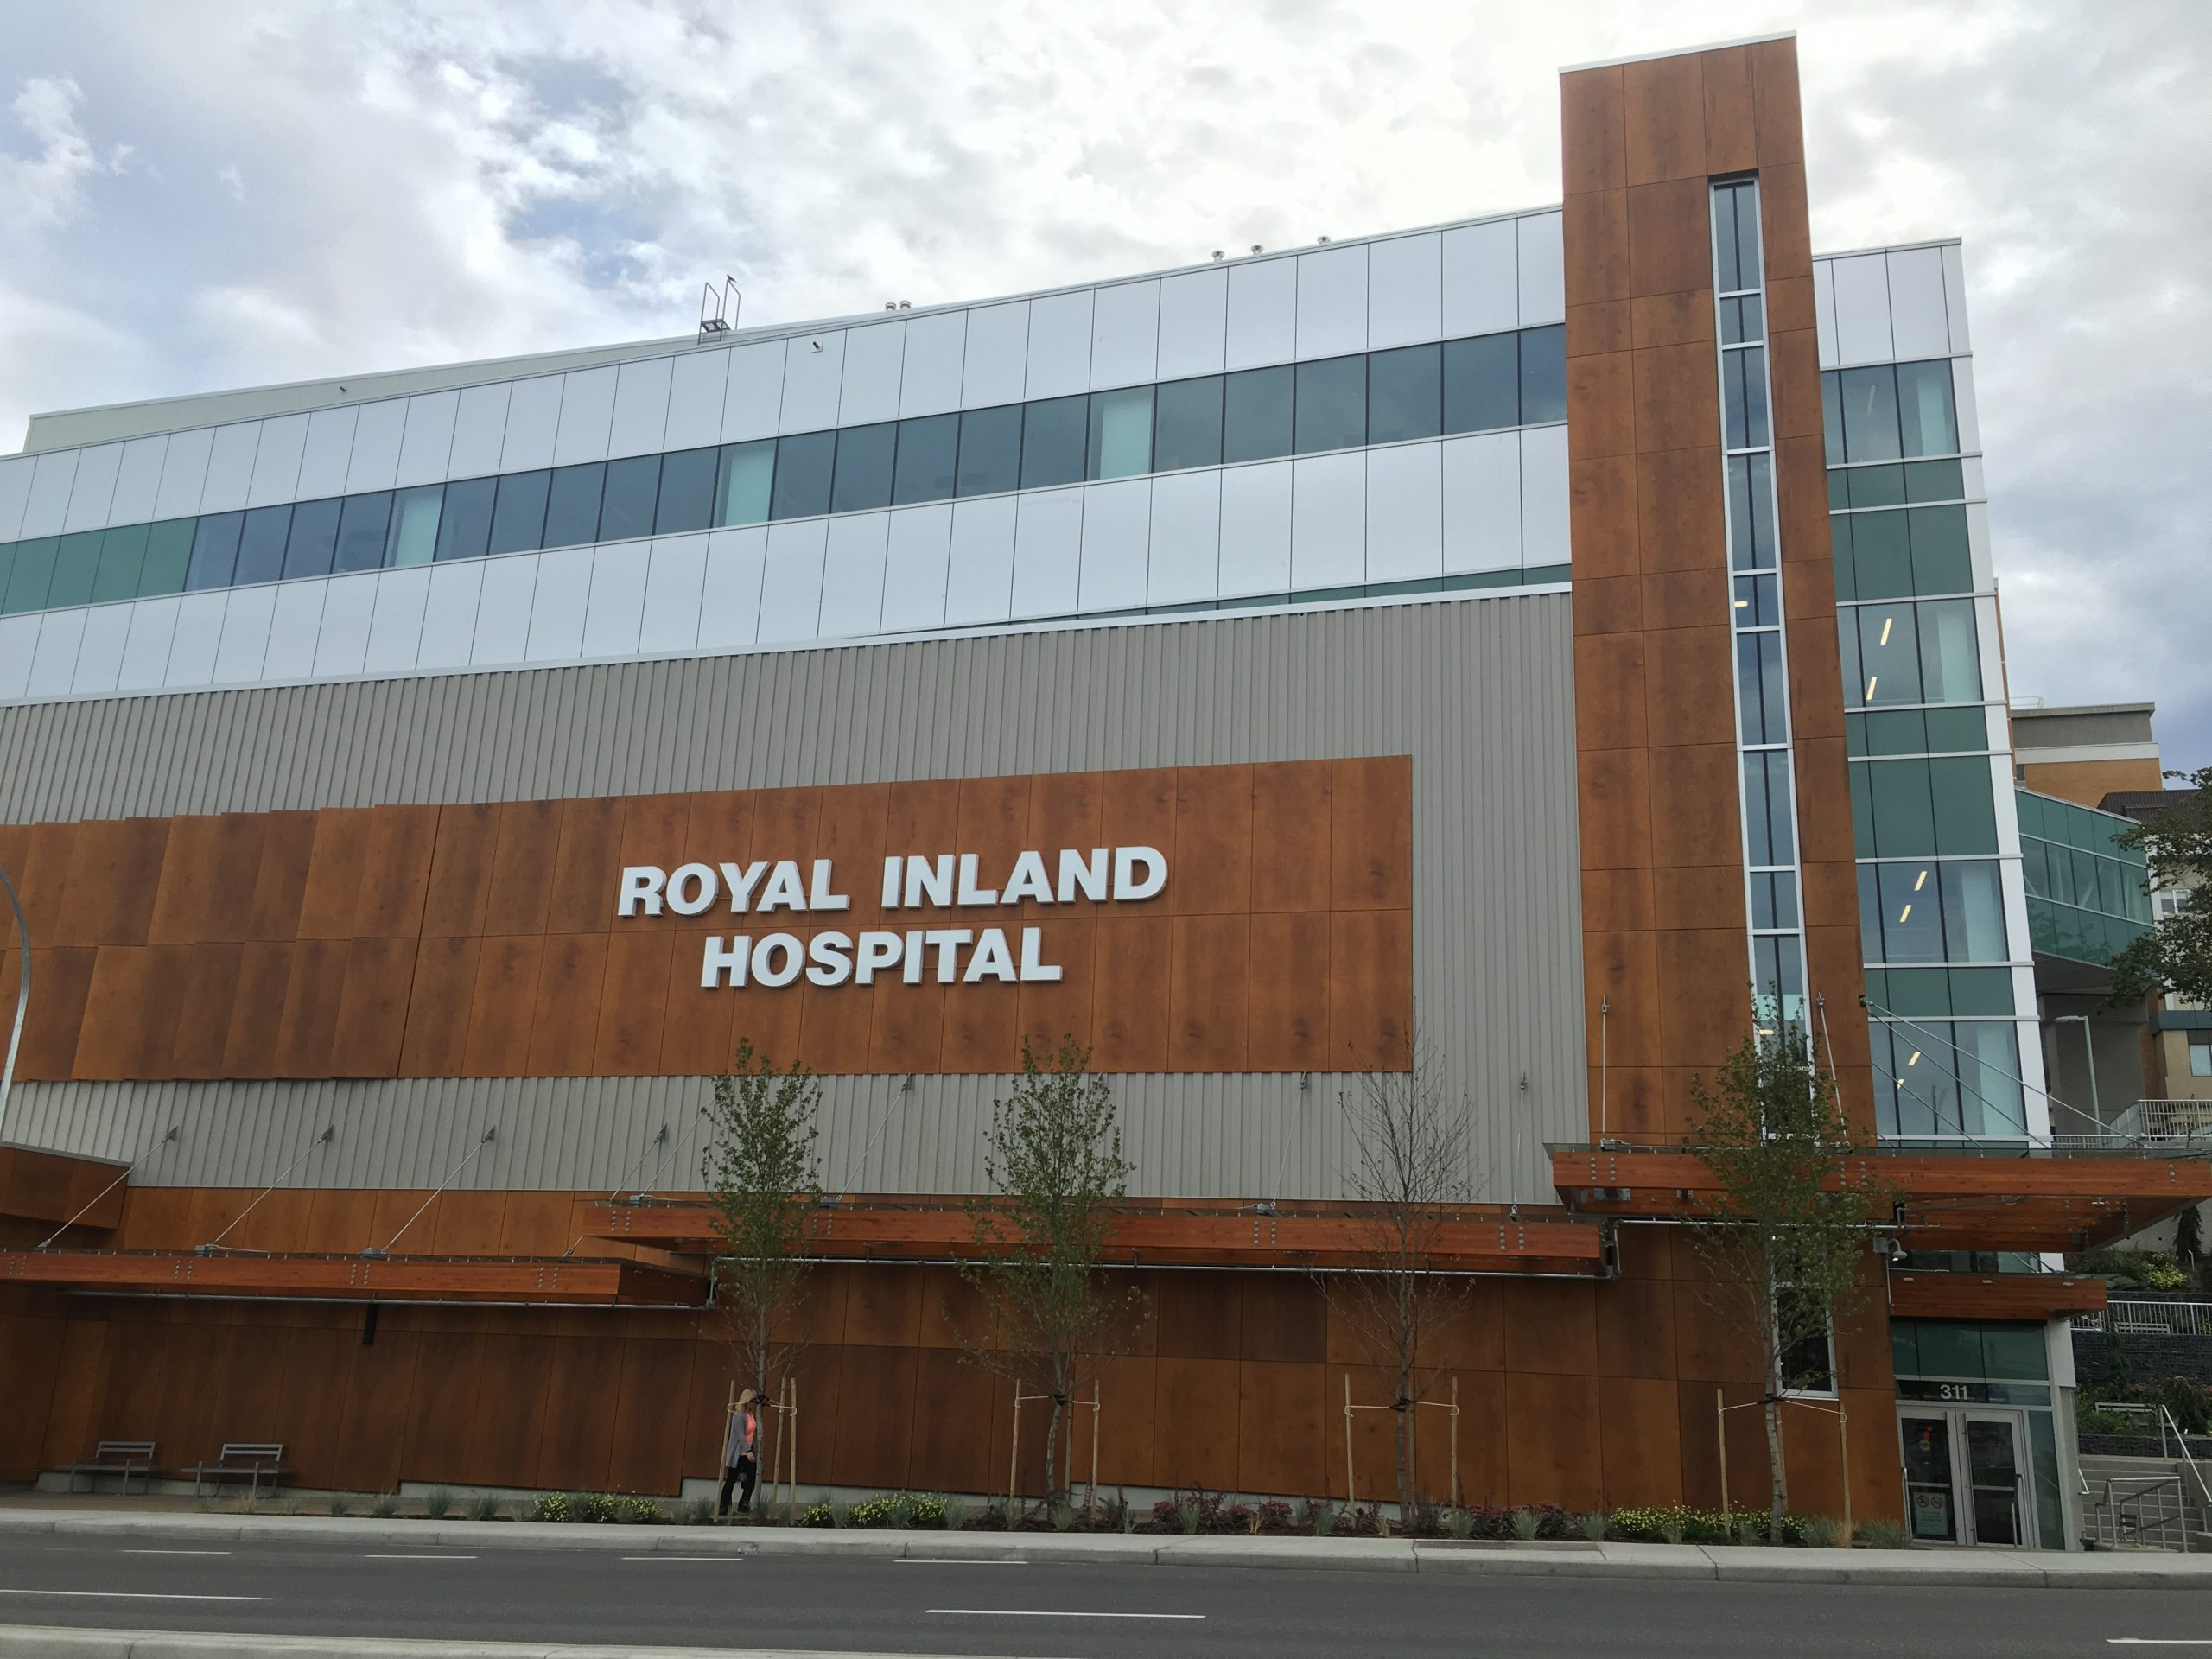 Royal Inland Hospital will be utilizing technology in new ways for rural patients